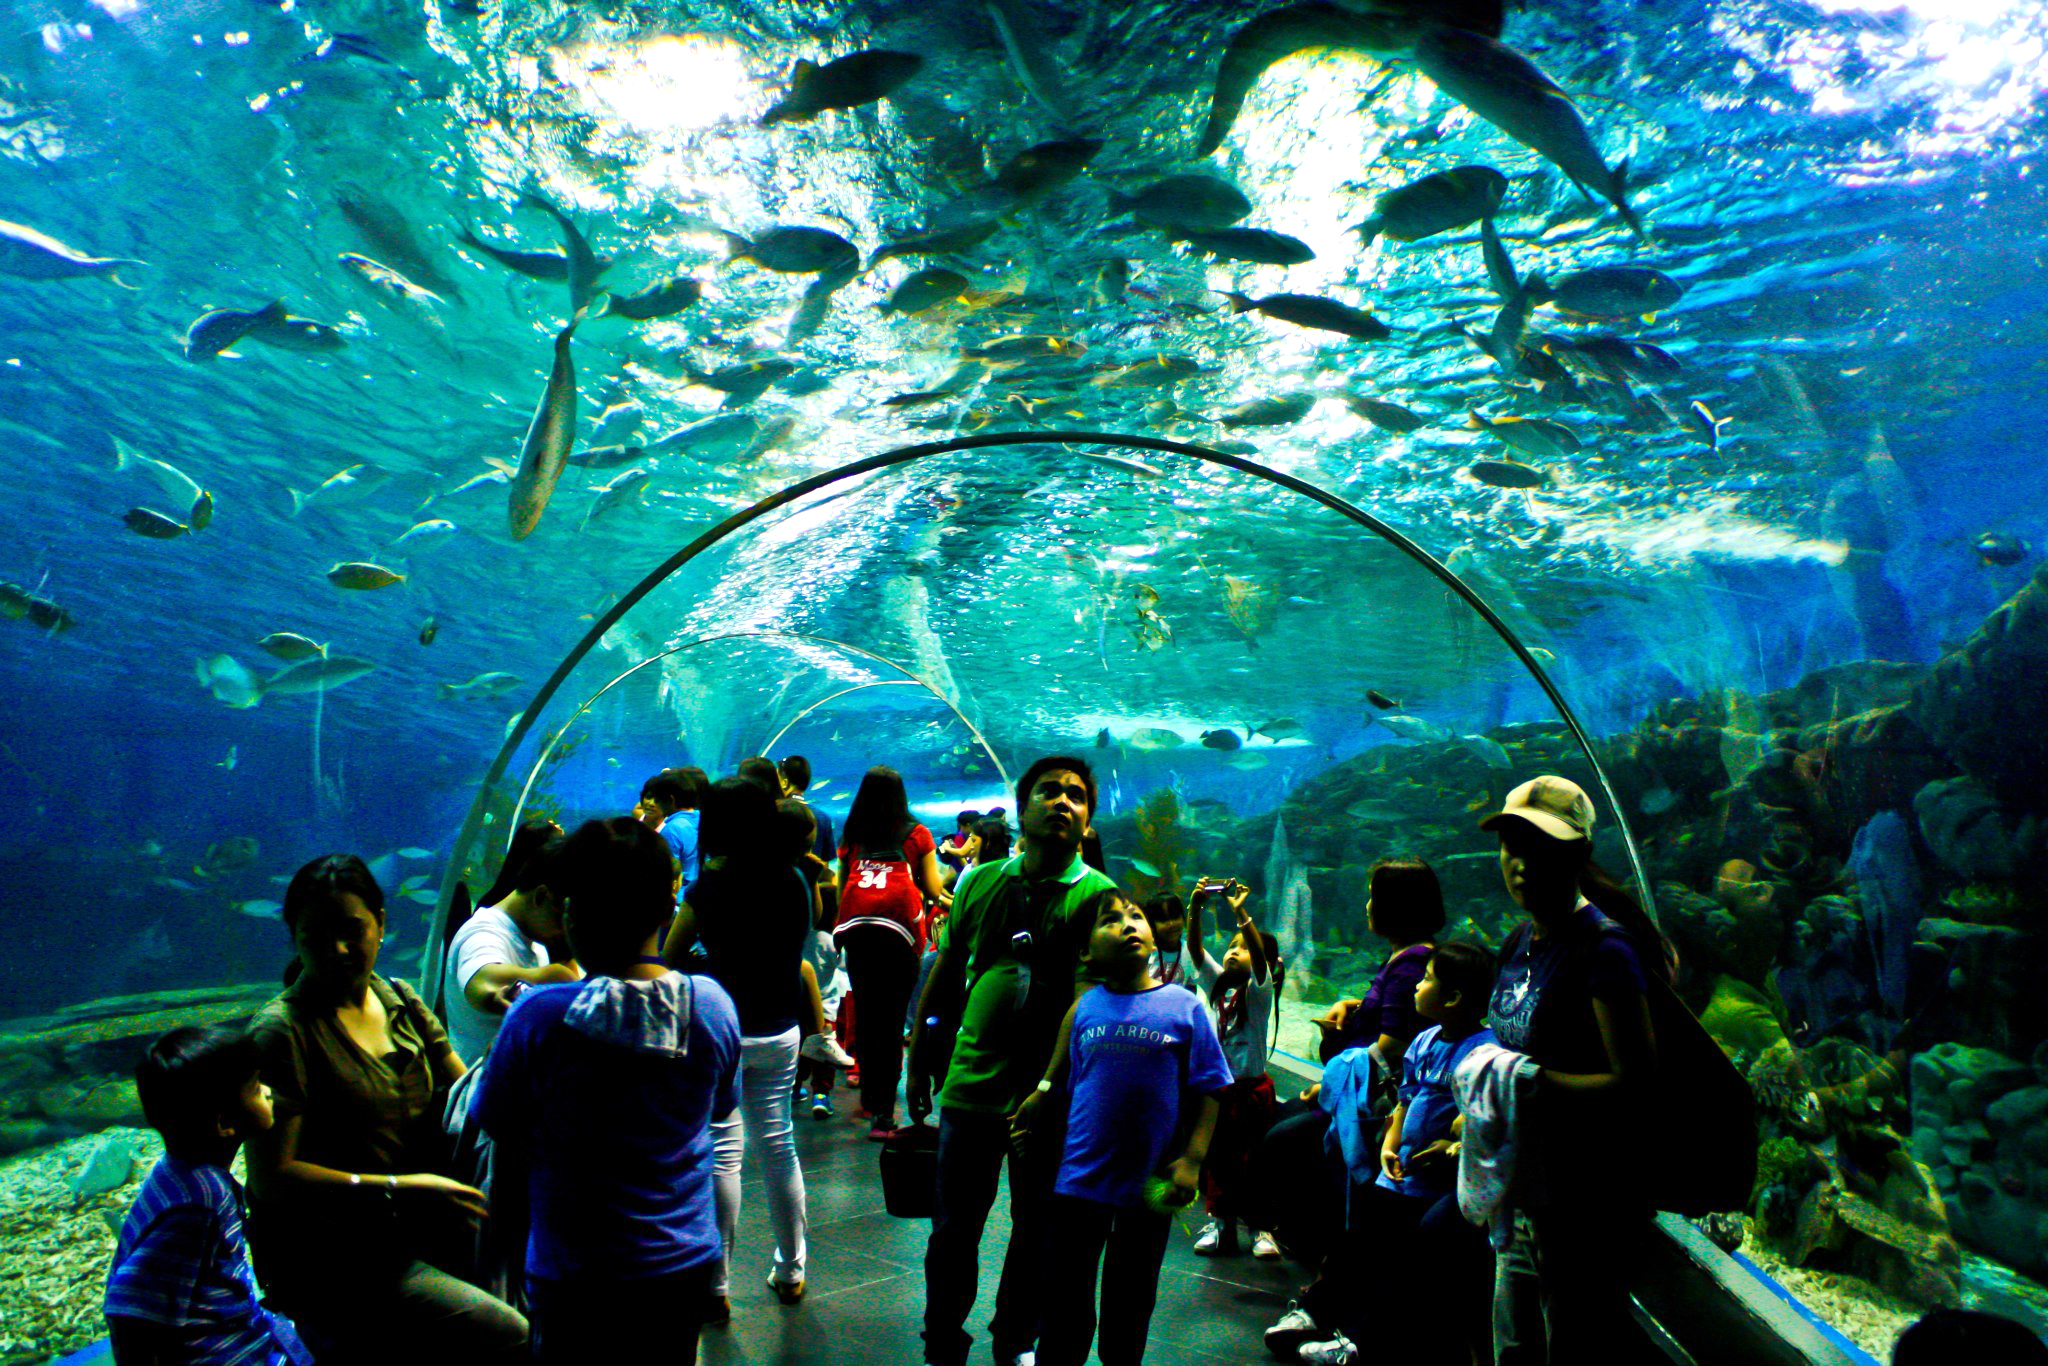 The Manila Ocean Park is also a must-visit for young and old alike. Photo by Louie Lapat